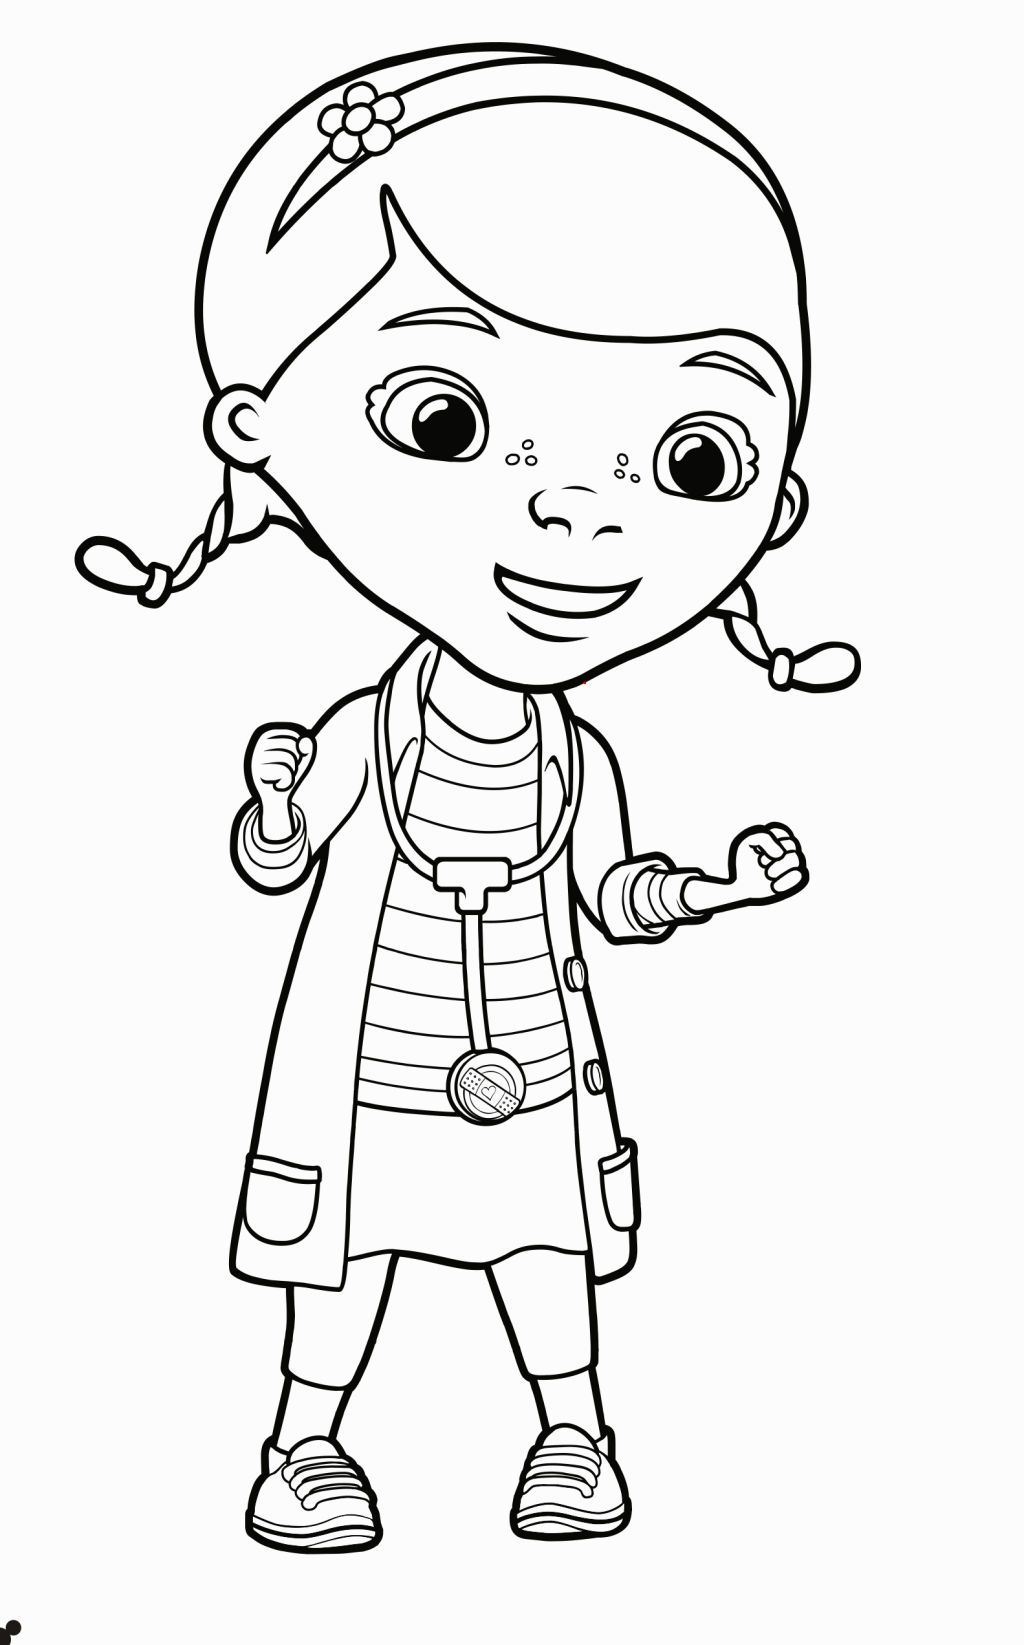 Doc Mcstuffins Coloring Sheet With Images